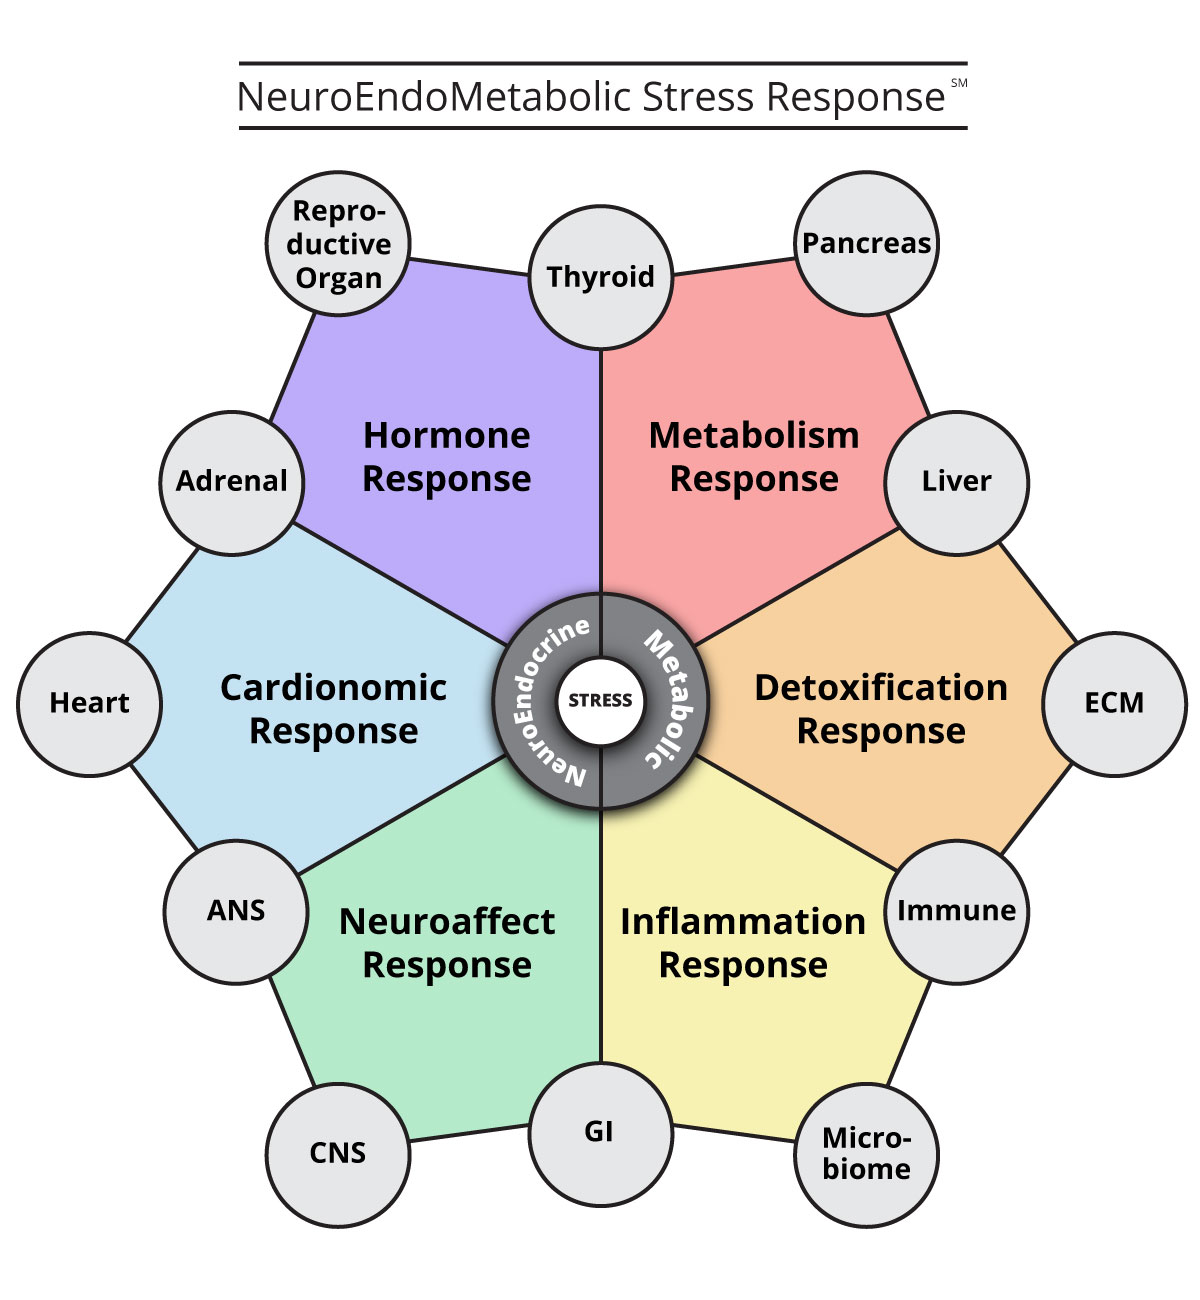 nem-response-symptoms-of-stress-chart-15068-8.jpg